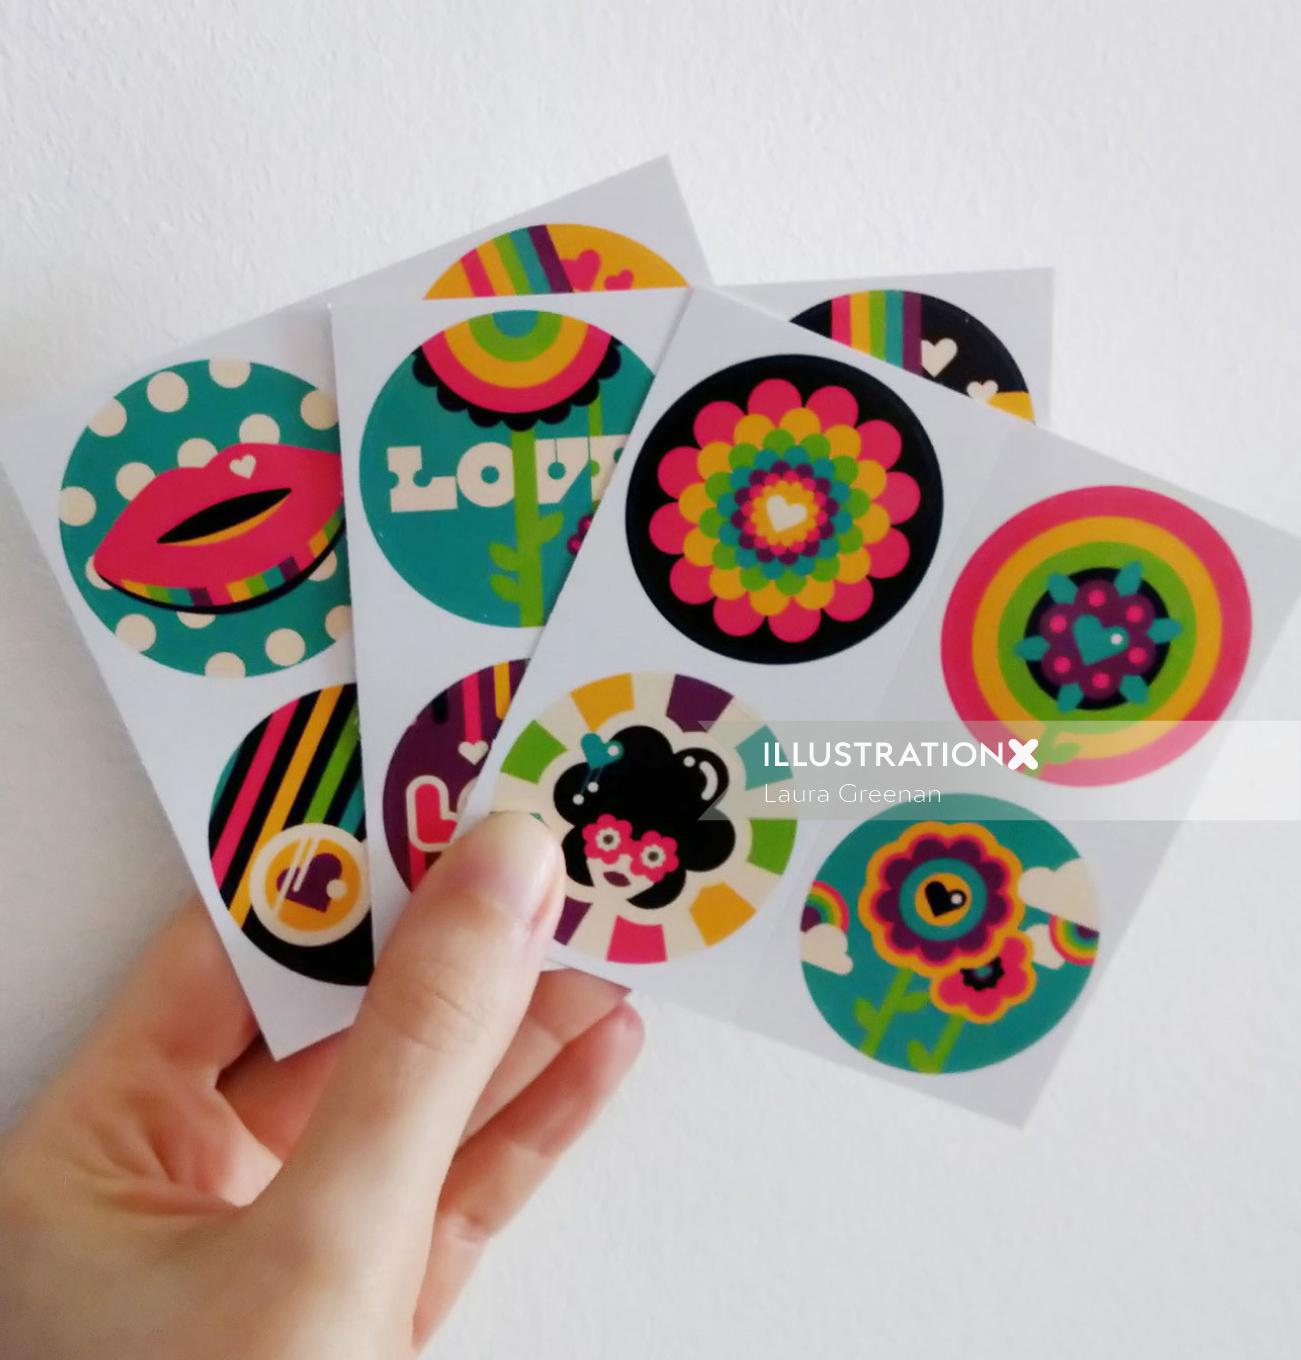 Spread a little love with some pop art stickers.